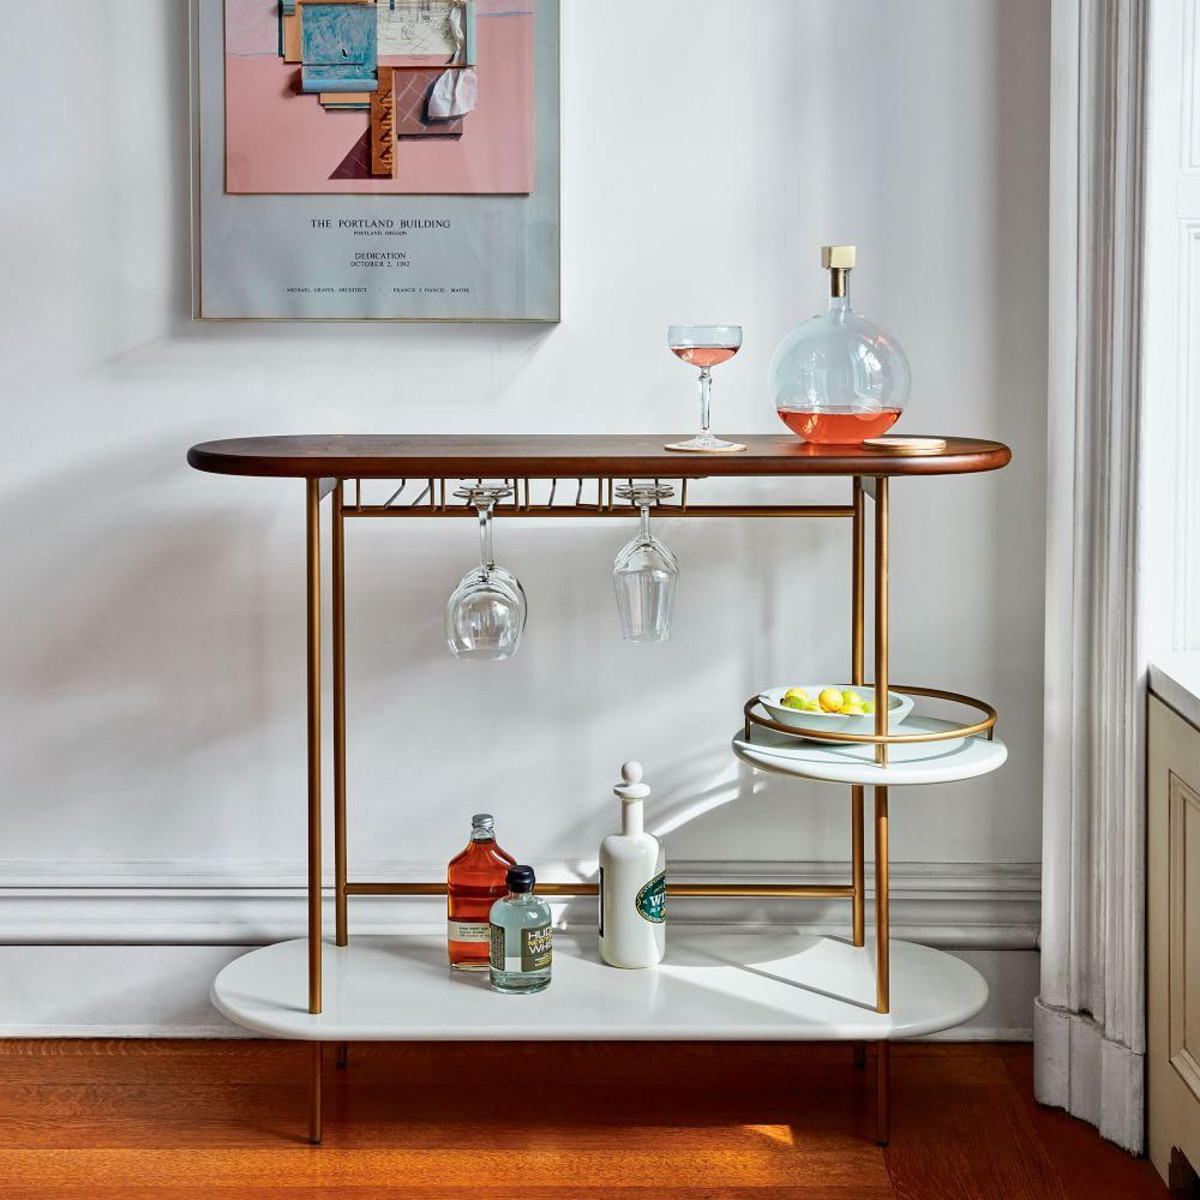 Sophie Robinson discusses one her favourite interior trends -curves and lozenge shapes. This classic yet 'on trend' drinks stand by West Elm is the perfect addition to any dining room or living room. #sophierobinosn #drinkstrolley #westelm #interiors